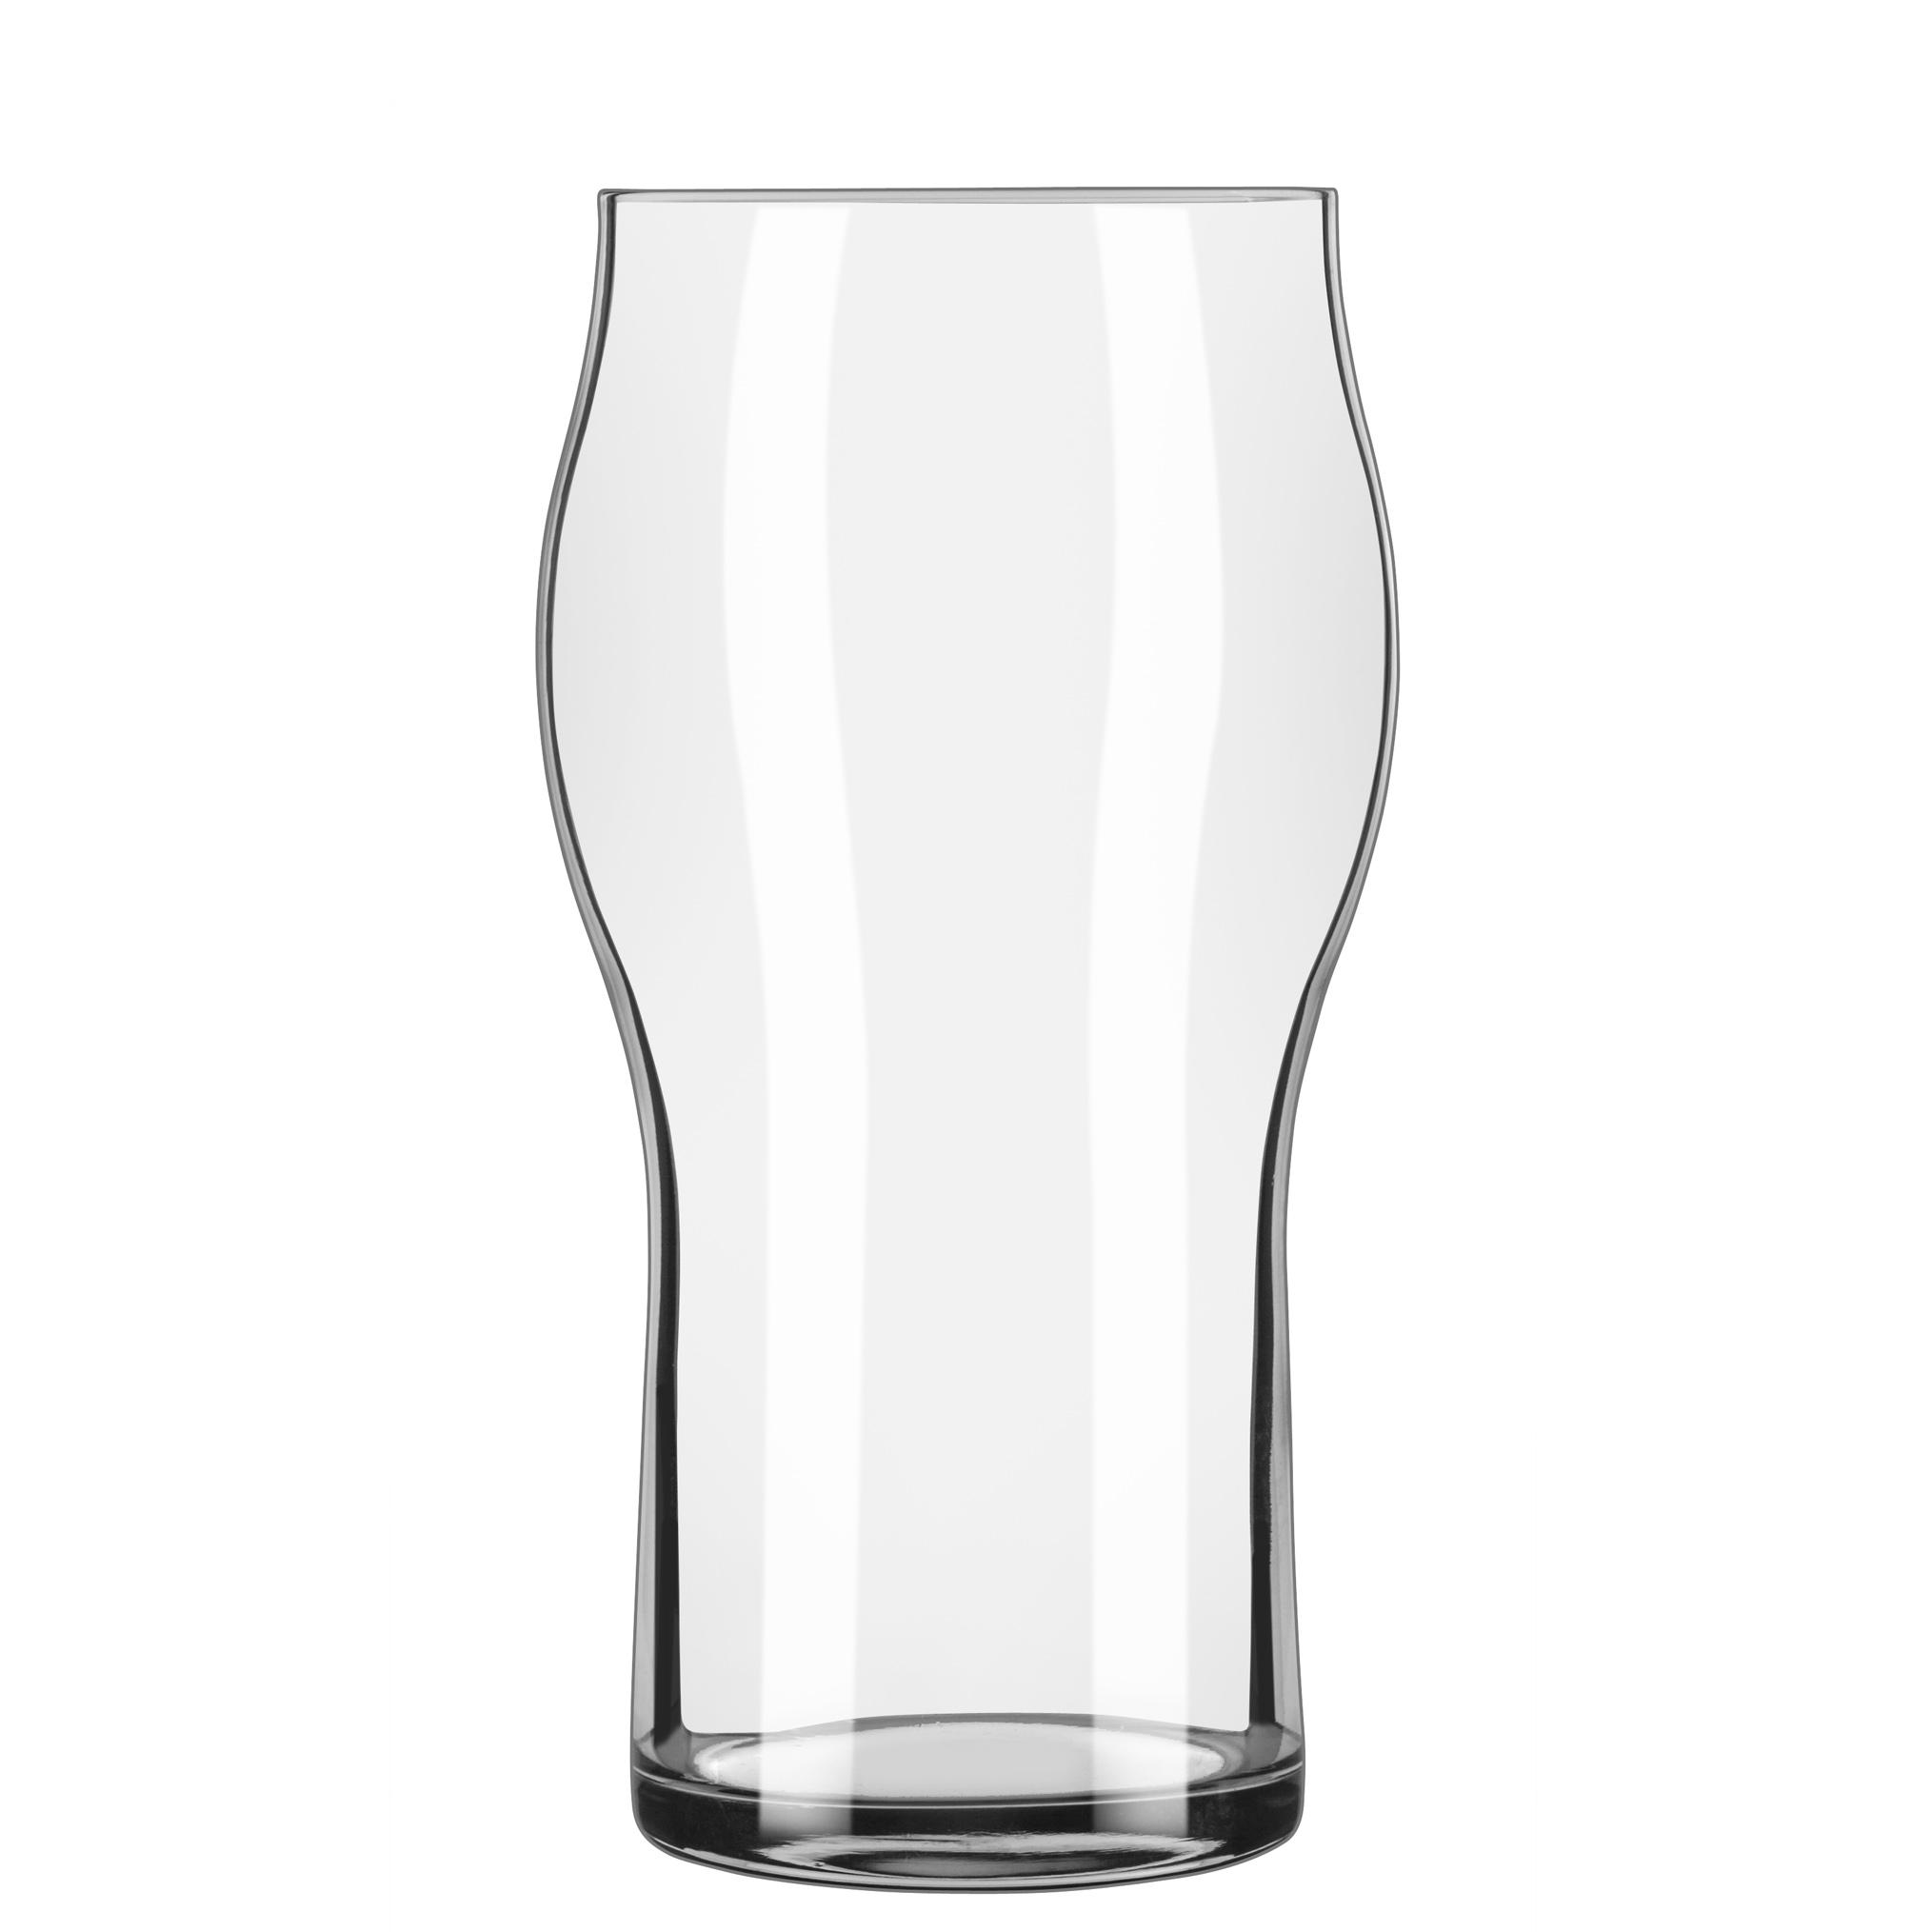 Libbey Glass 9173 glass, beer